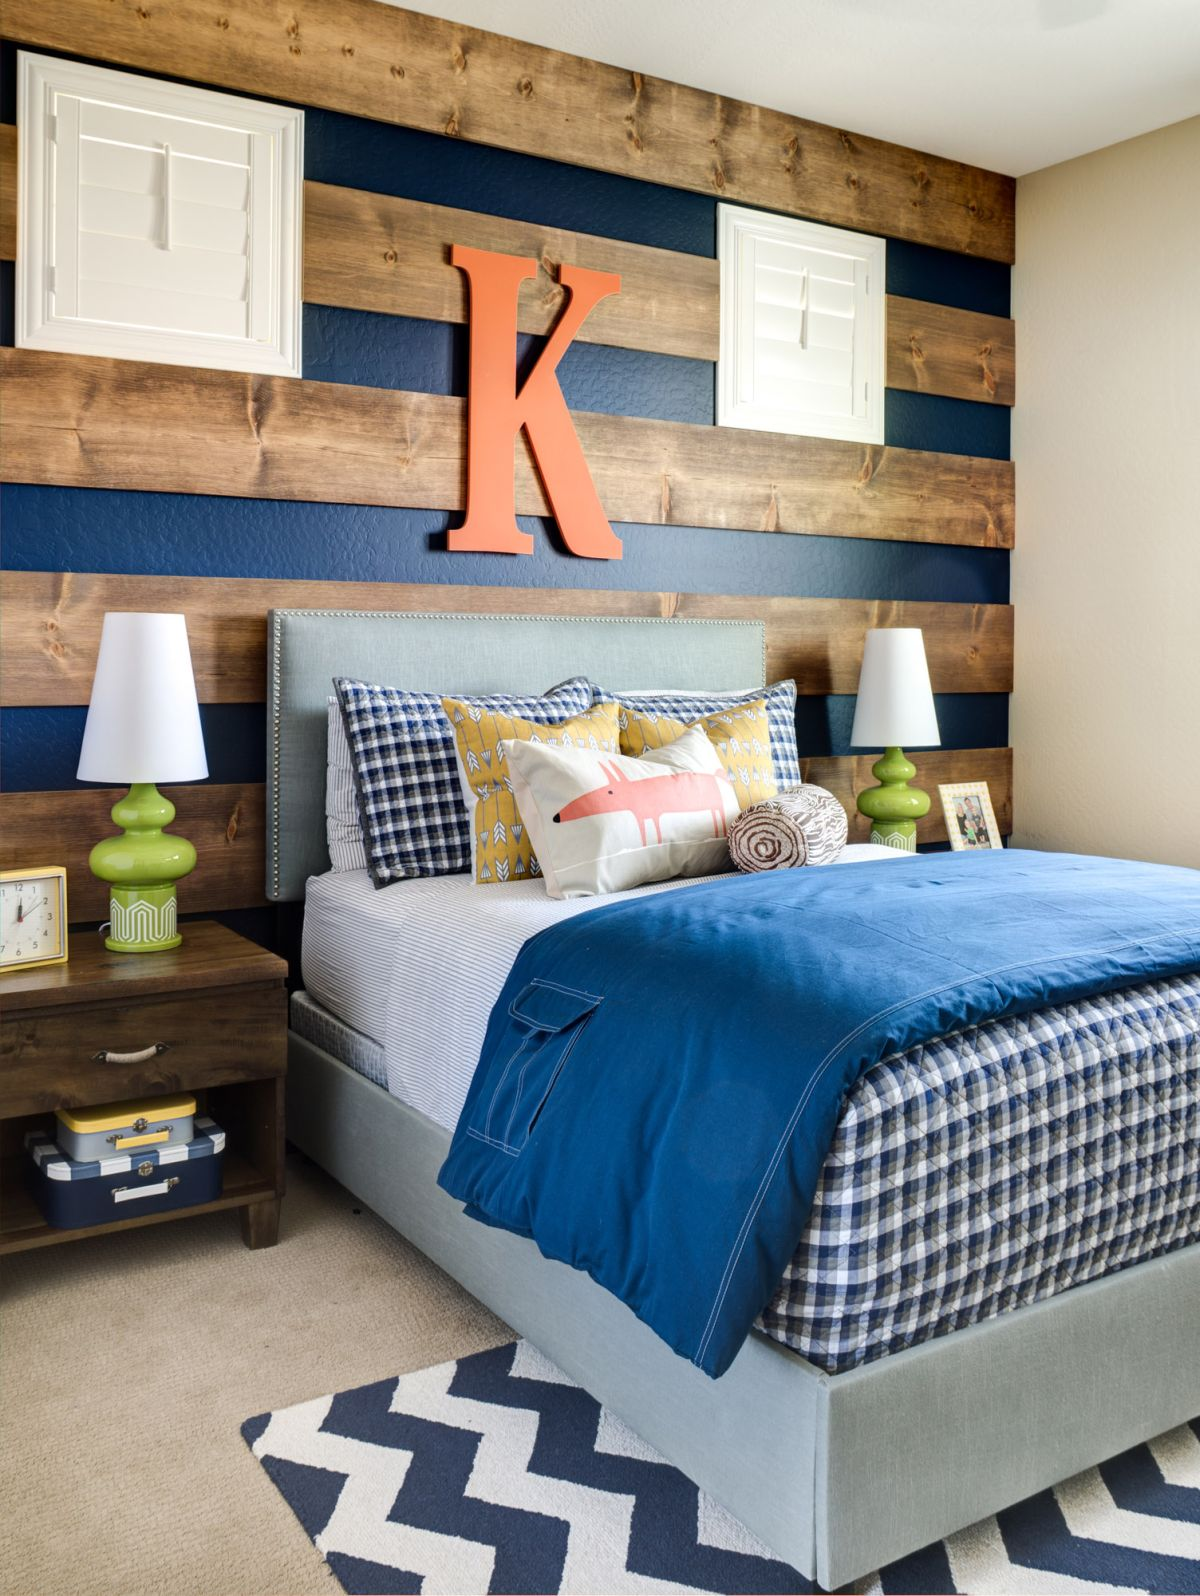 Dare To Be Different  20 Unforgettable Accent Walls Striped Wood Accent Wall  View in gallery